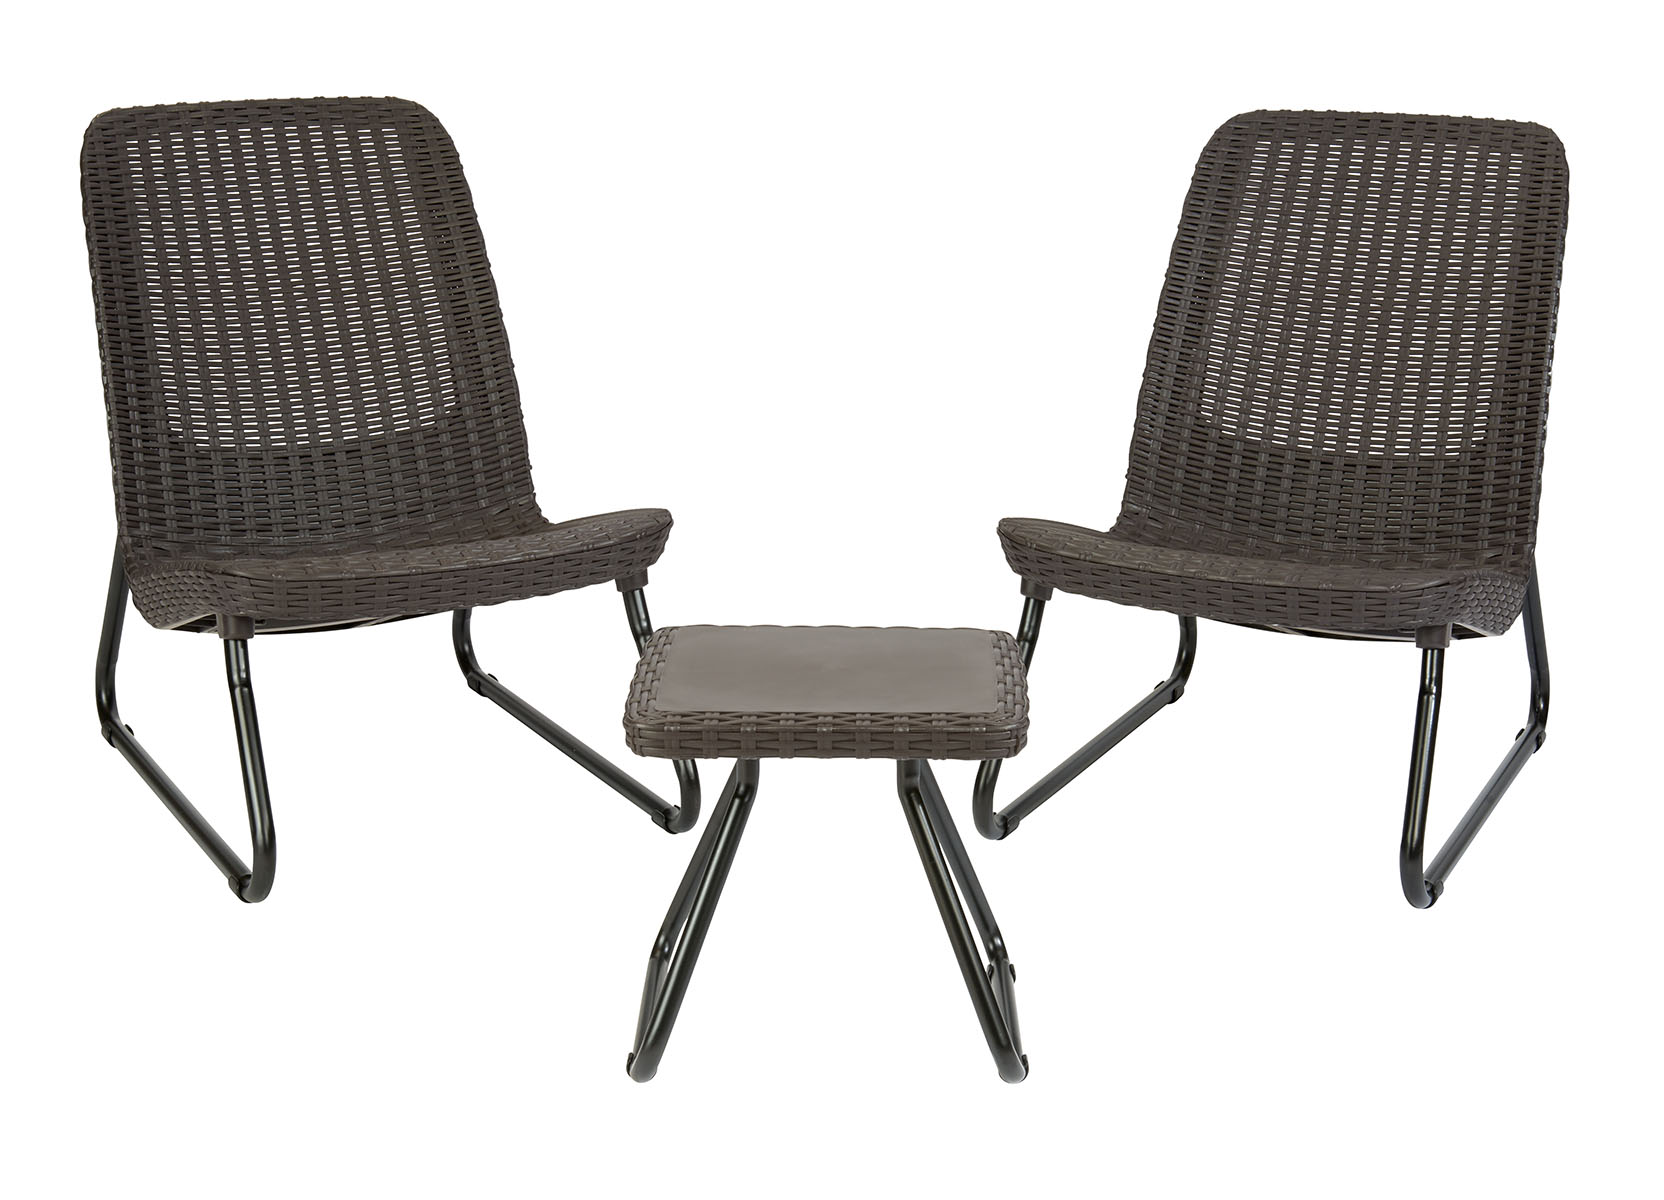 Keter Rio Resin 3 Piece Conversation Set, All Weather Plastic Patio Lounge  Furniture